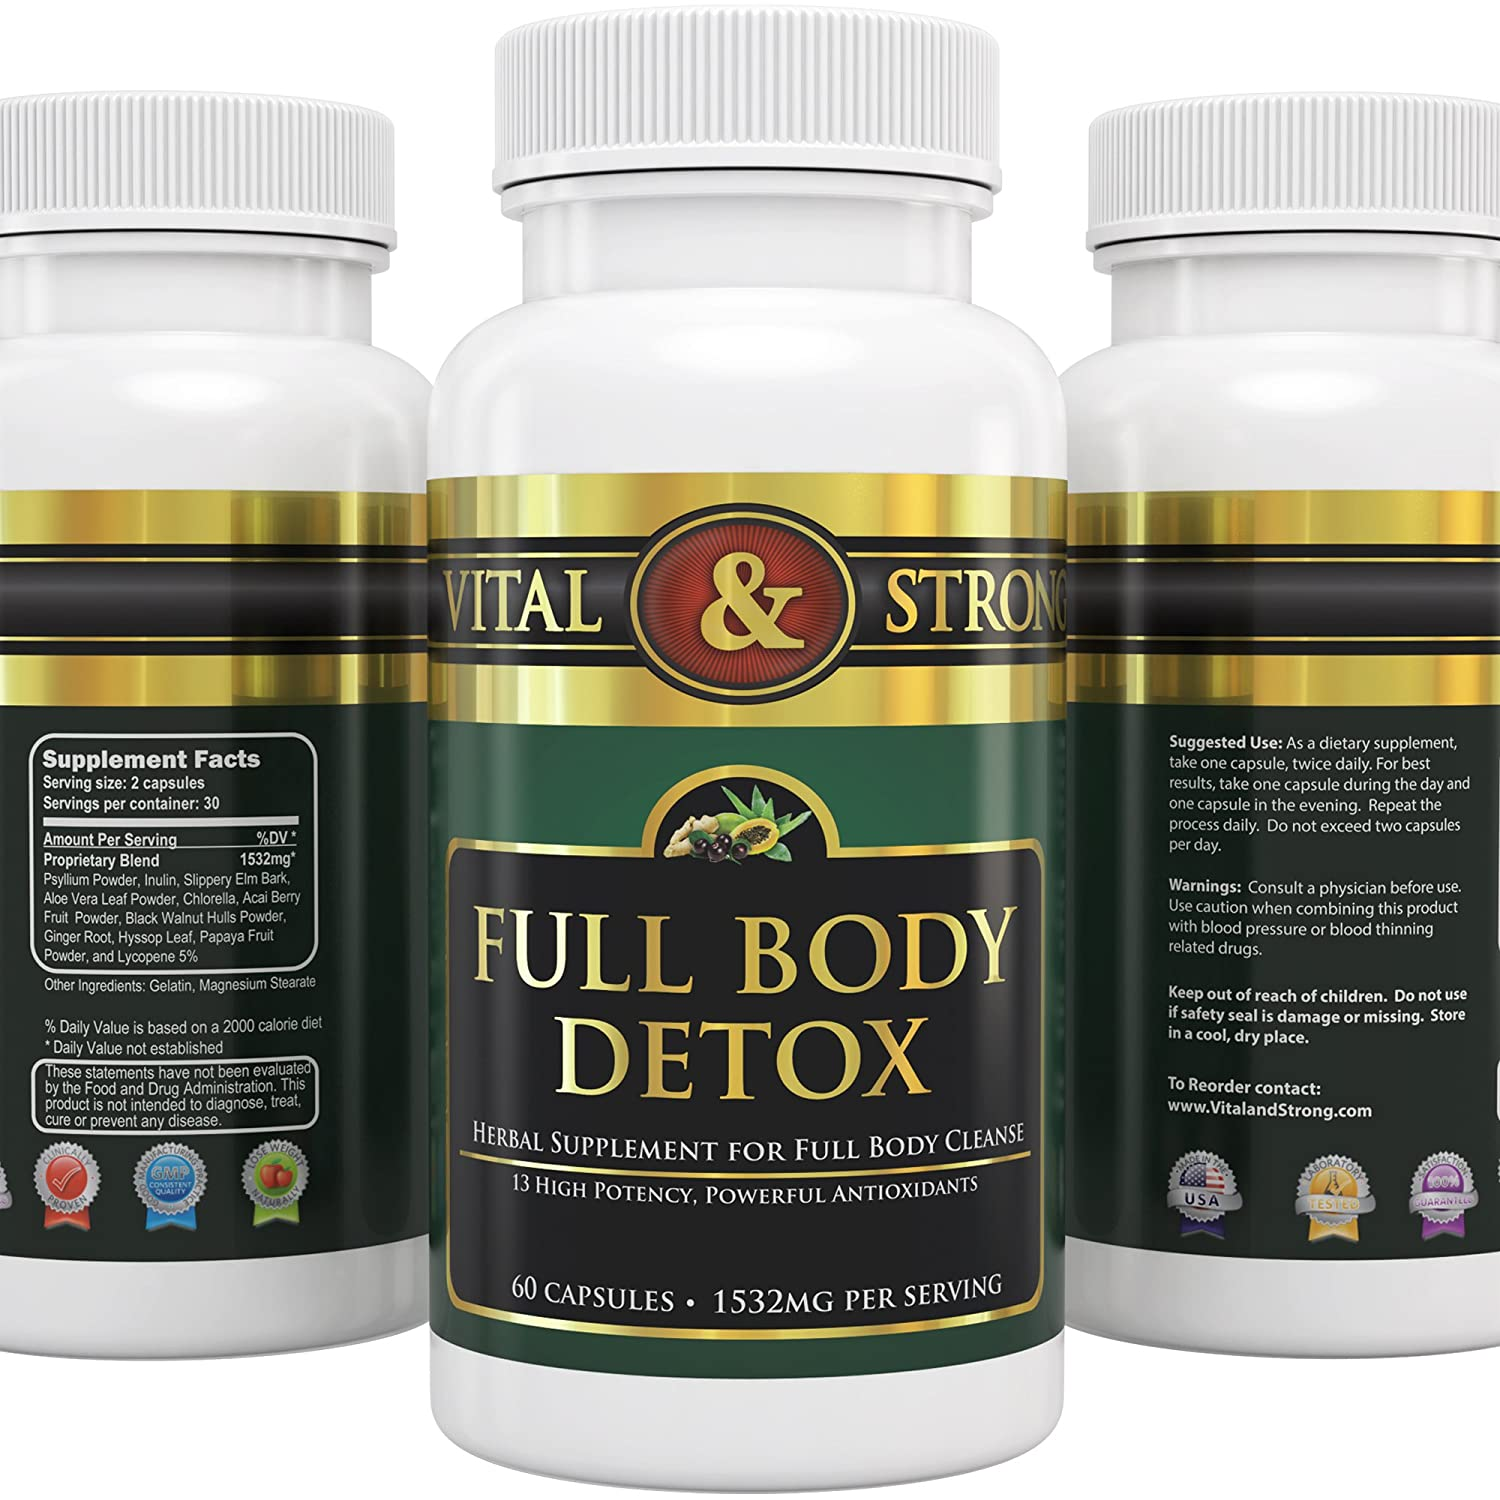 Hypothyroidism supplements weight loss